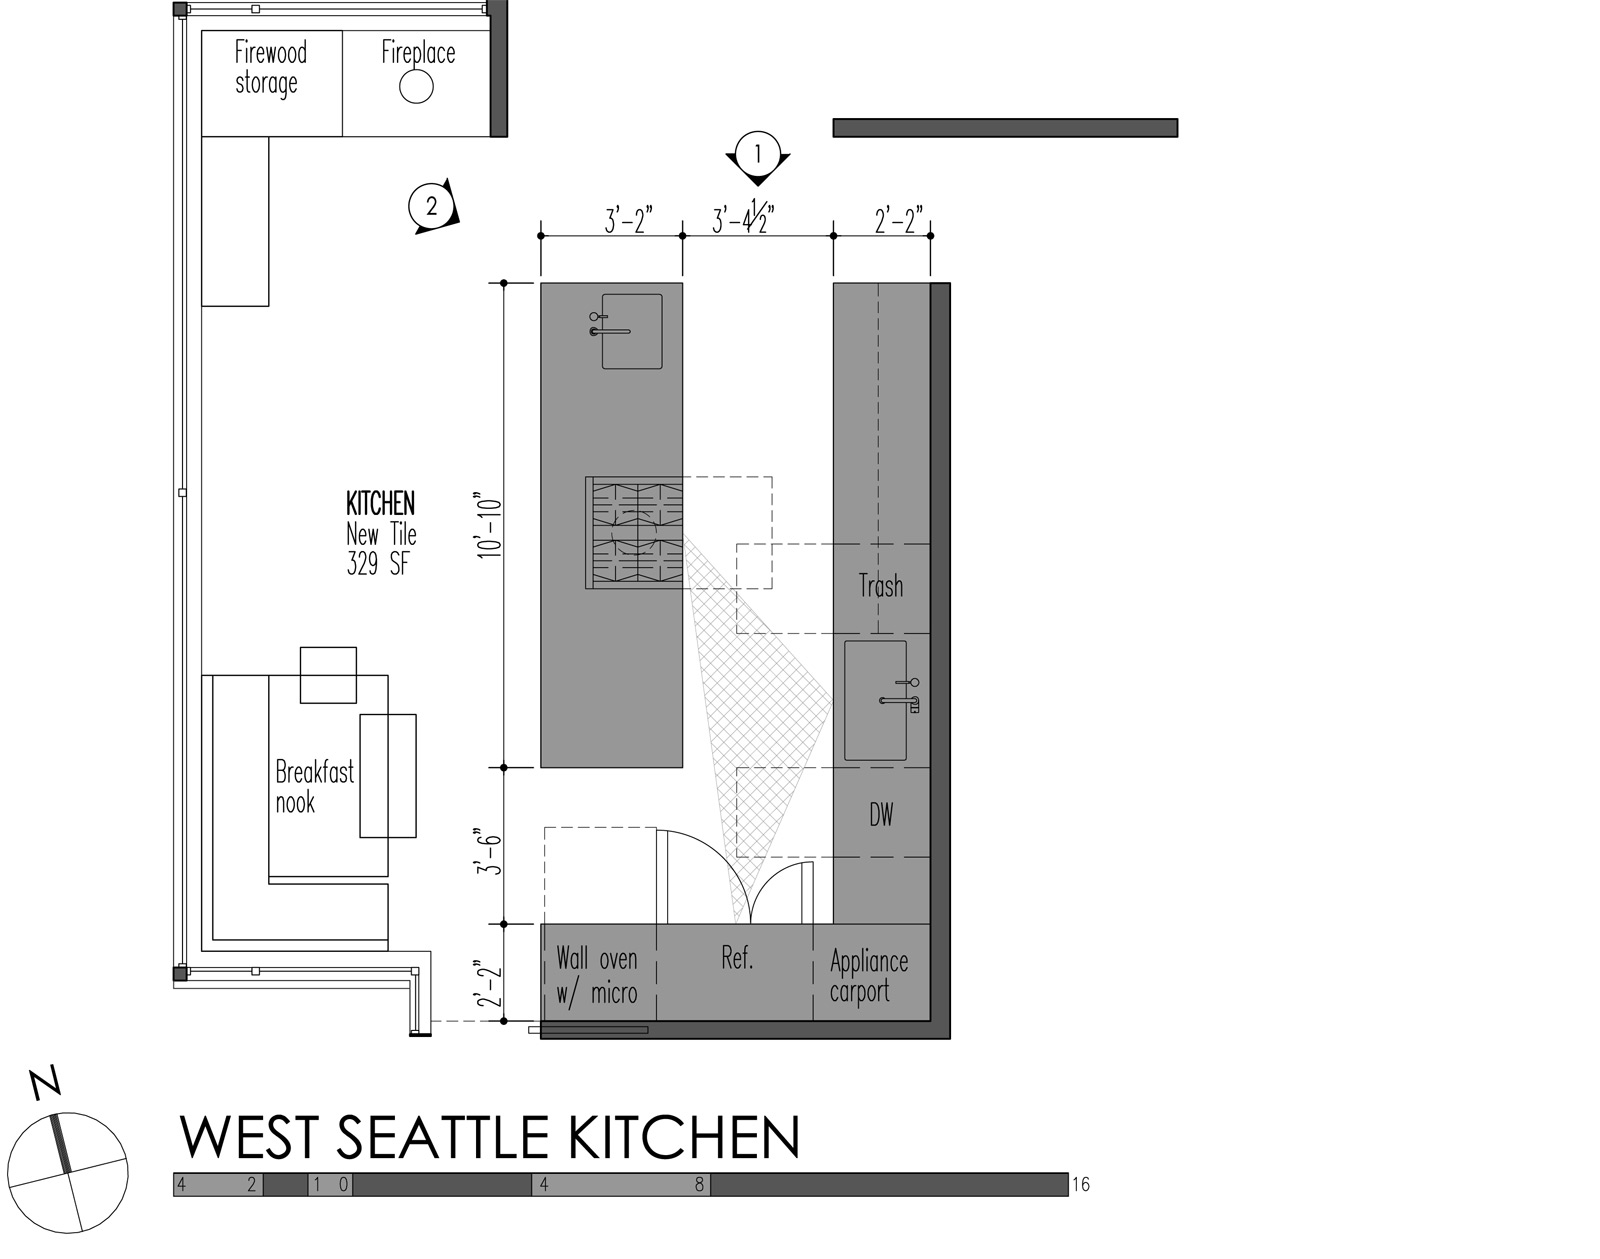 5 modern kitchen designs principles kitchen cabinet dimensions West Seattle Kitchen plan